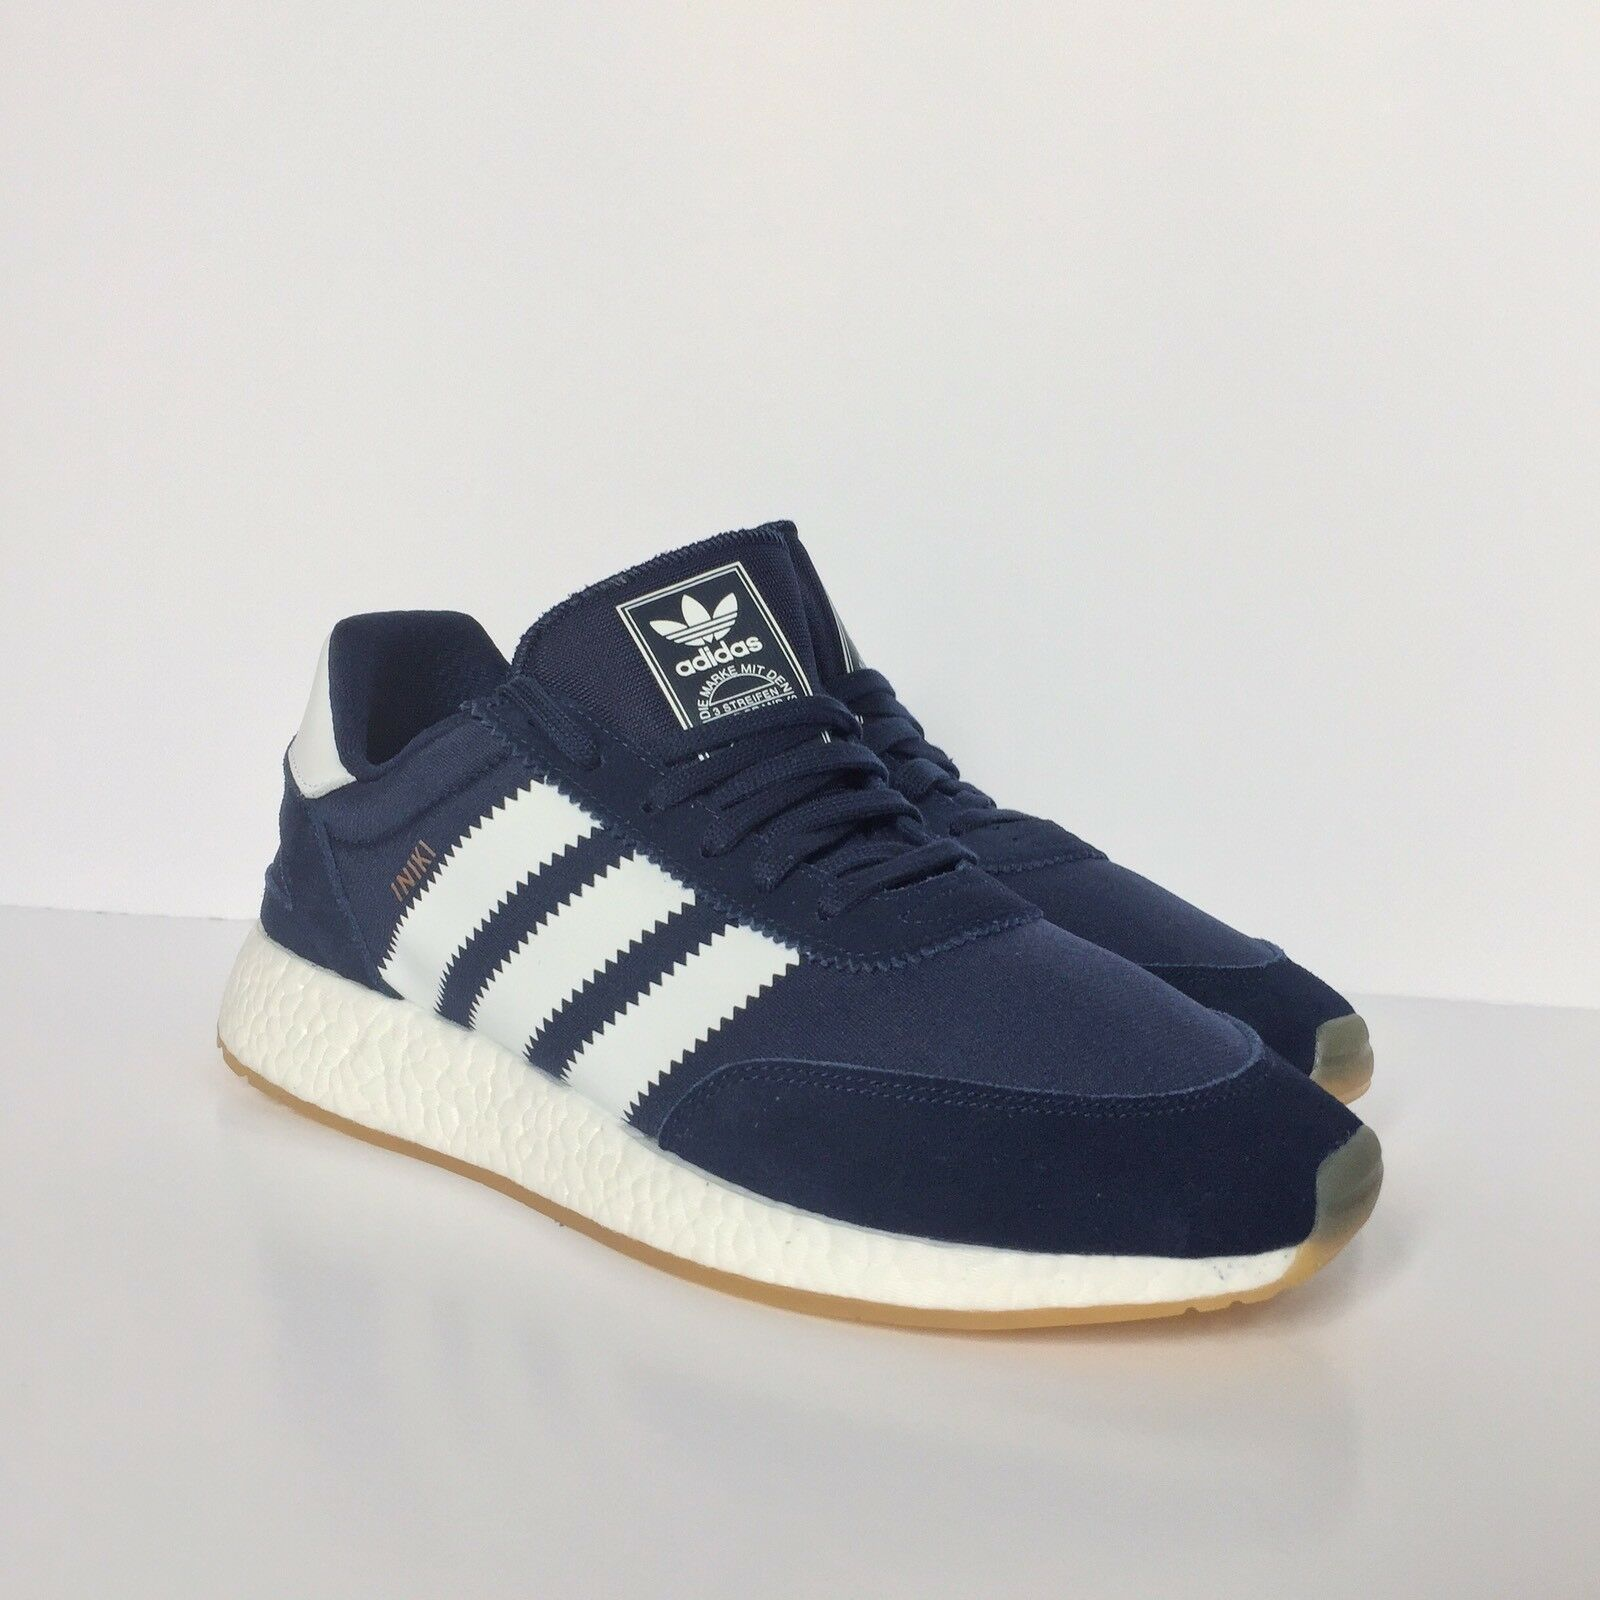 Adidas Iniki Runner Boost Sole Collegiate bluee  Size 11UK SNKRSUB.COM